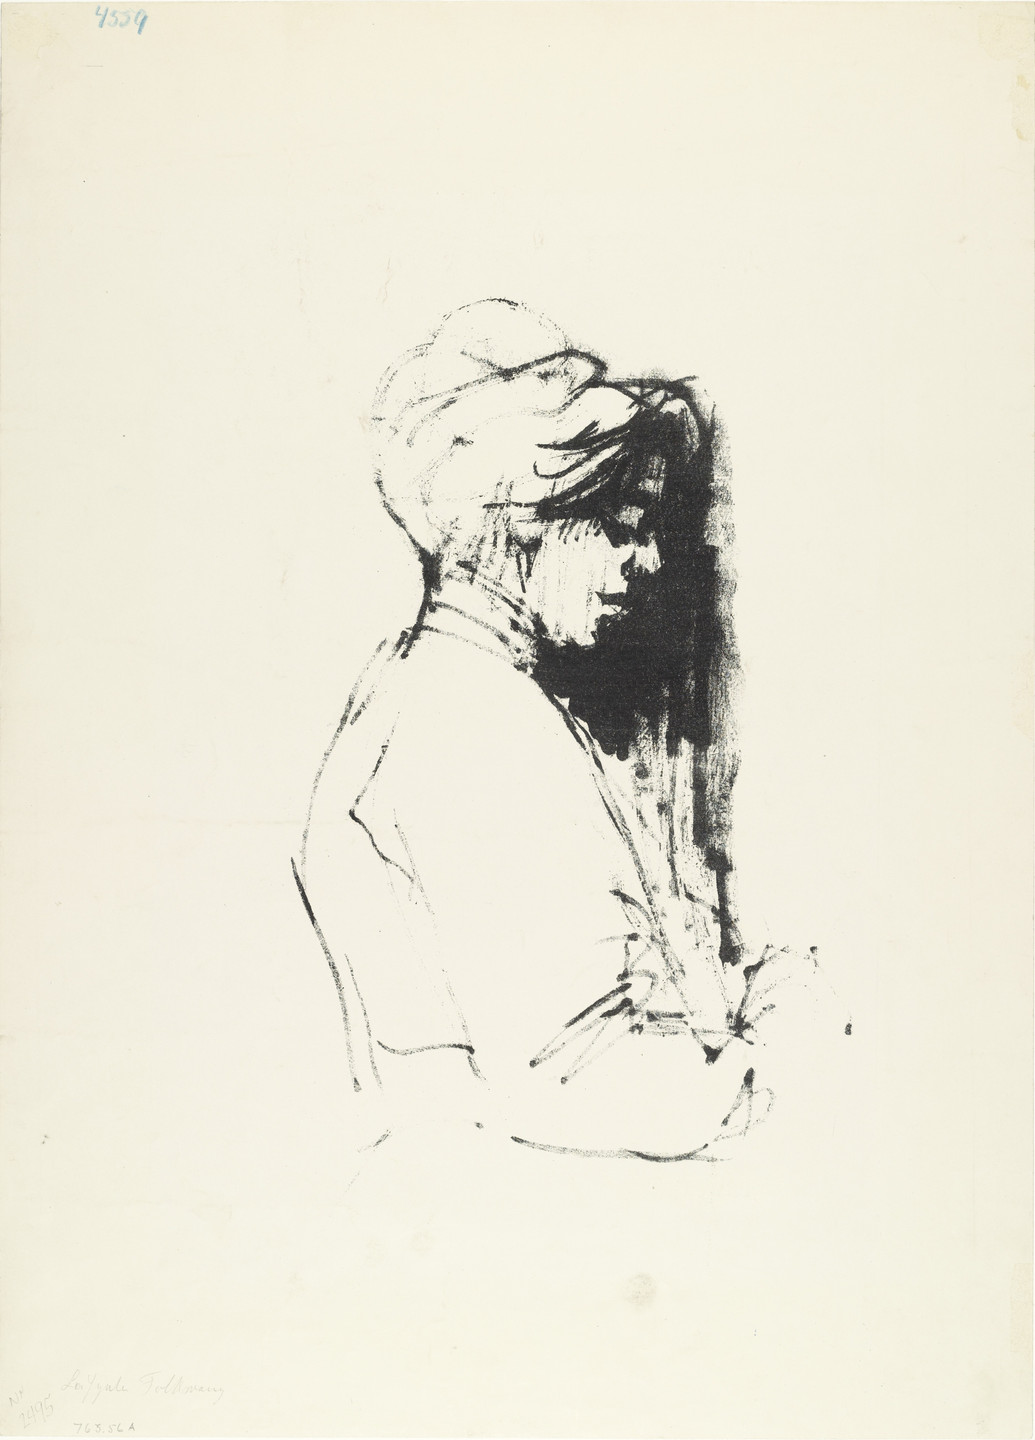 Emil Nolde. Alice (recto); Nude with Thick Hair (Akt mit starkem Haar). 1907 (recto); 1908 (verso)